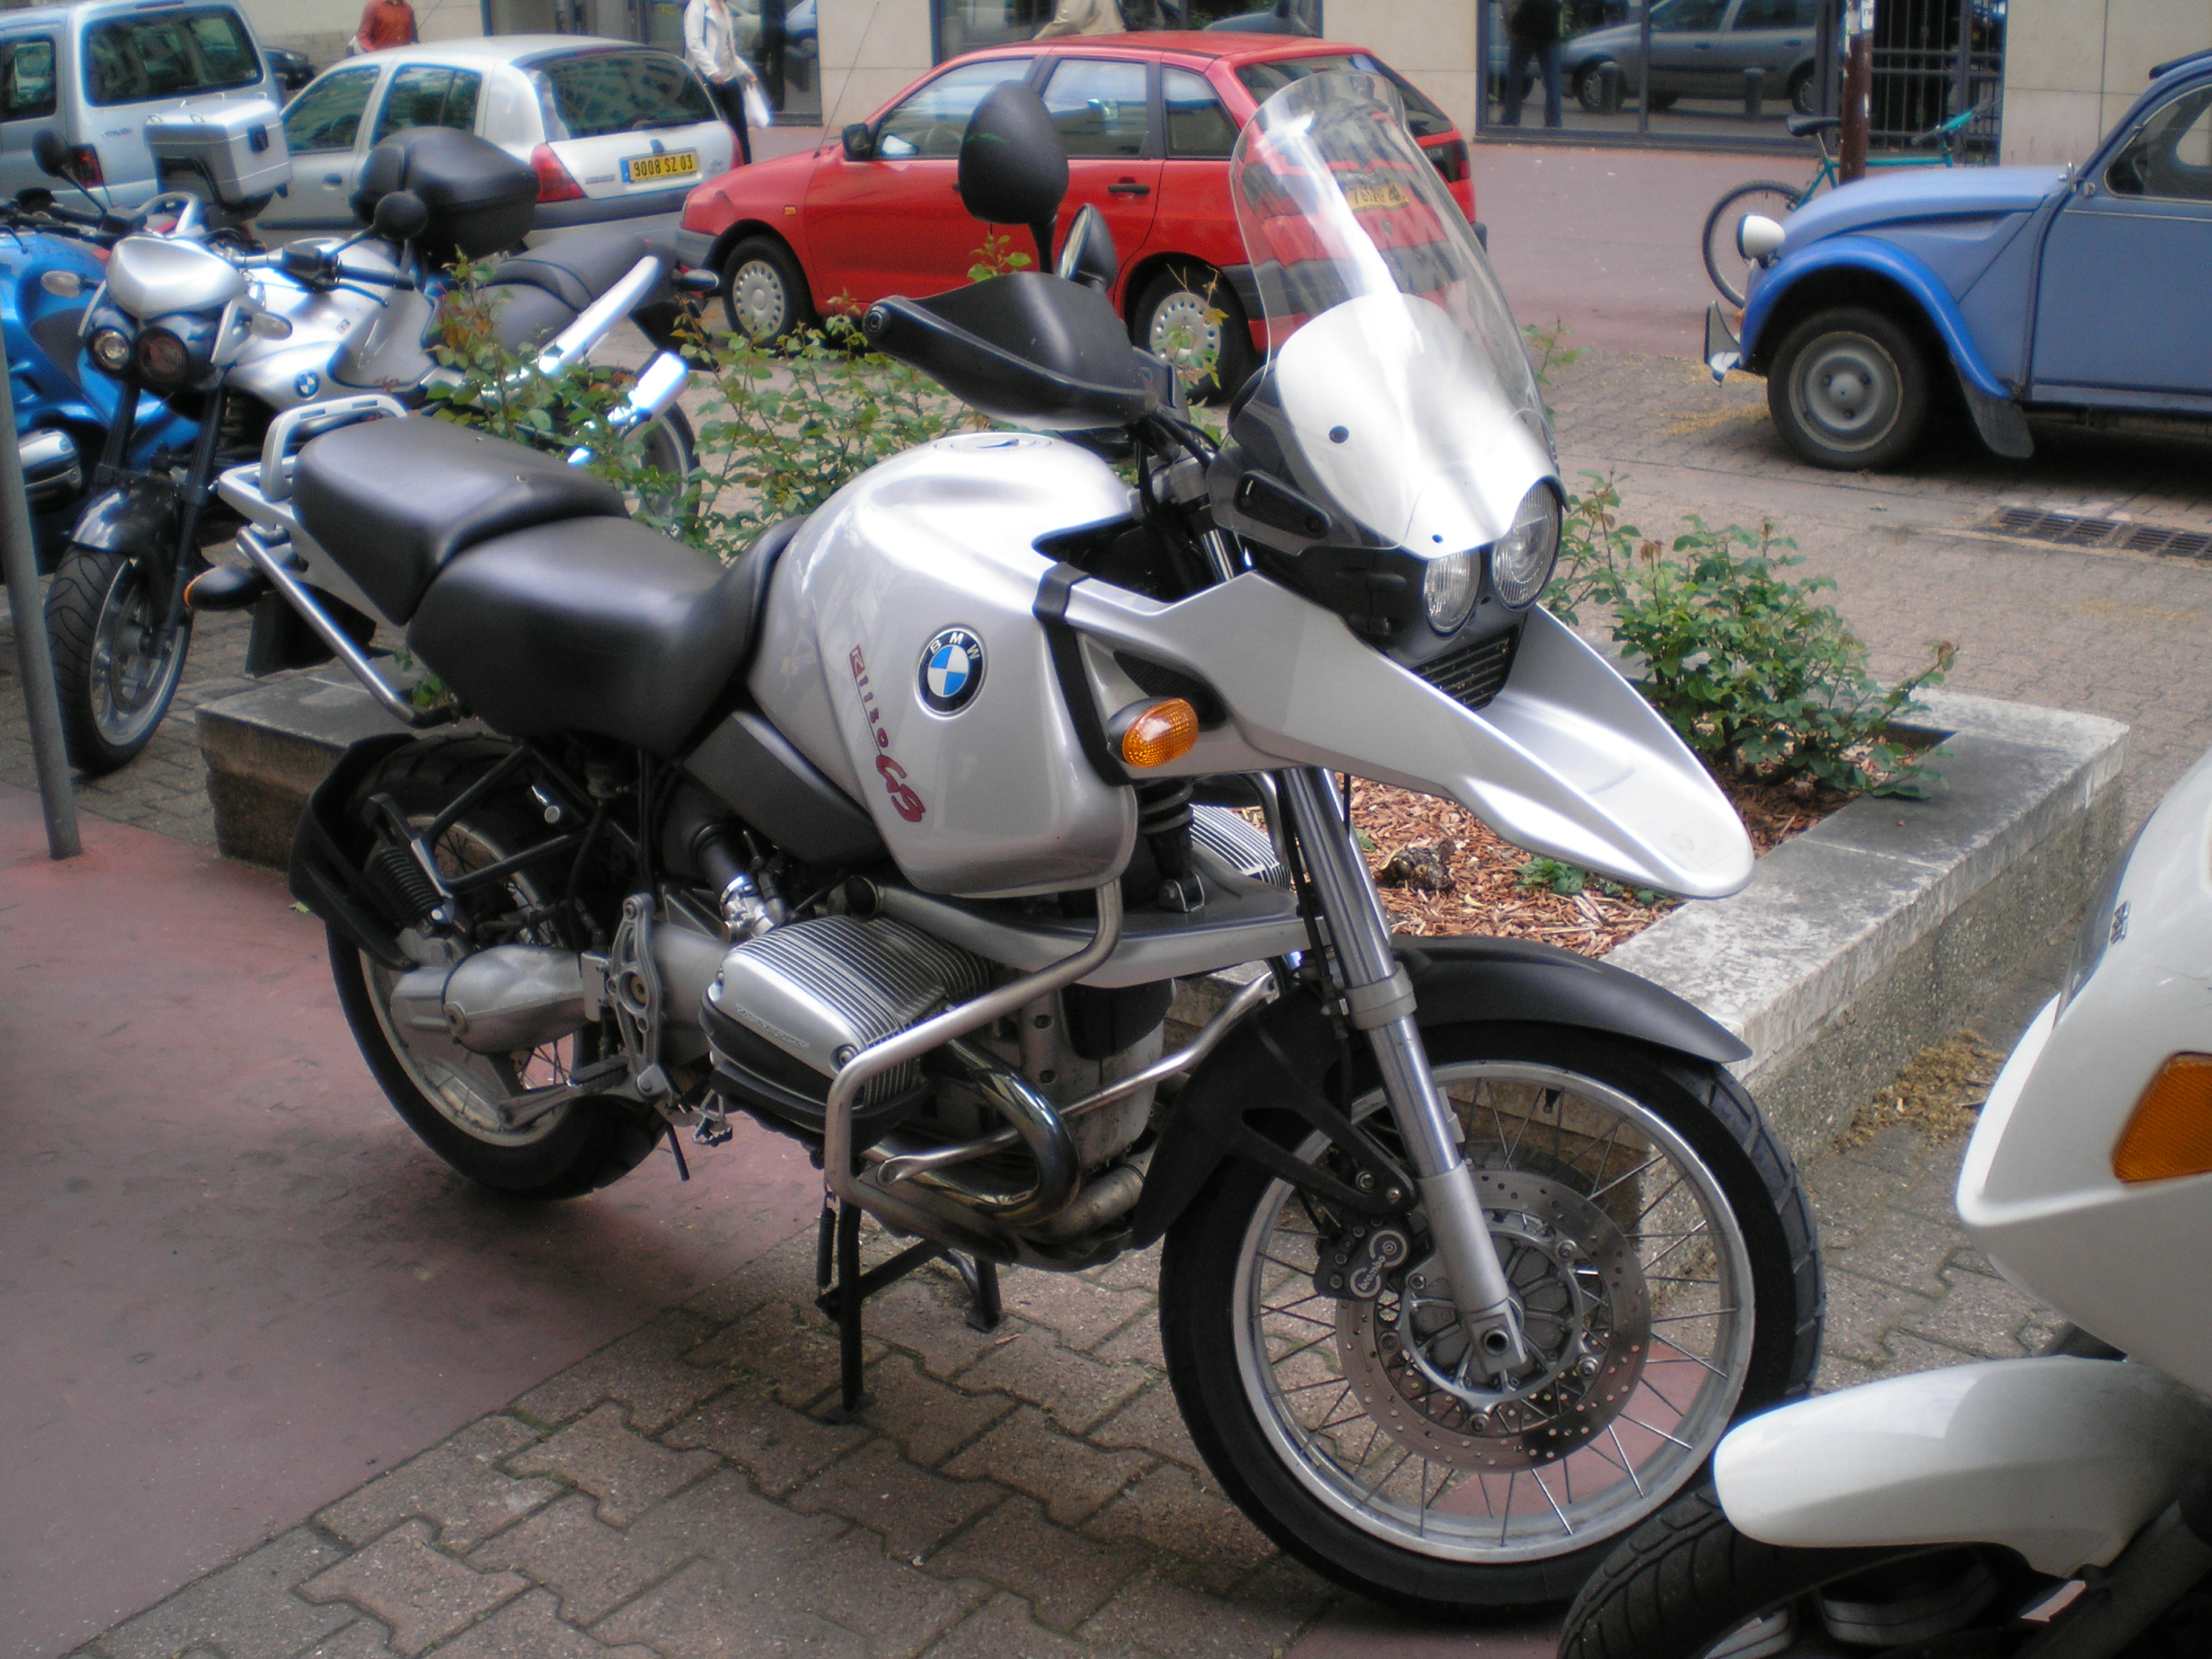 BMW R80GS 1995 images #6408